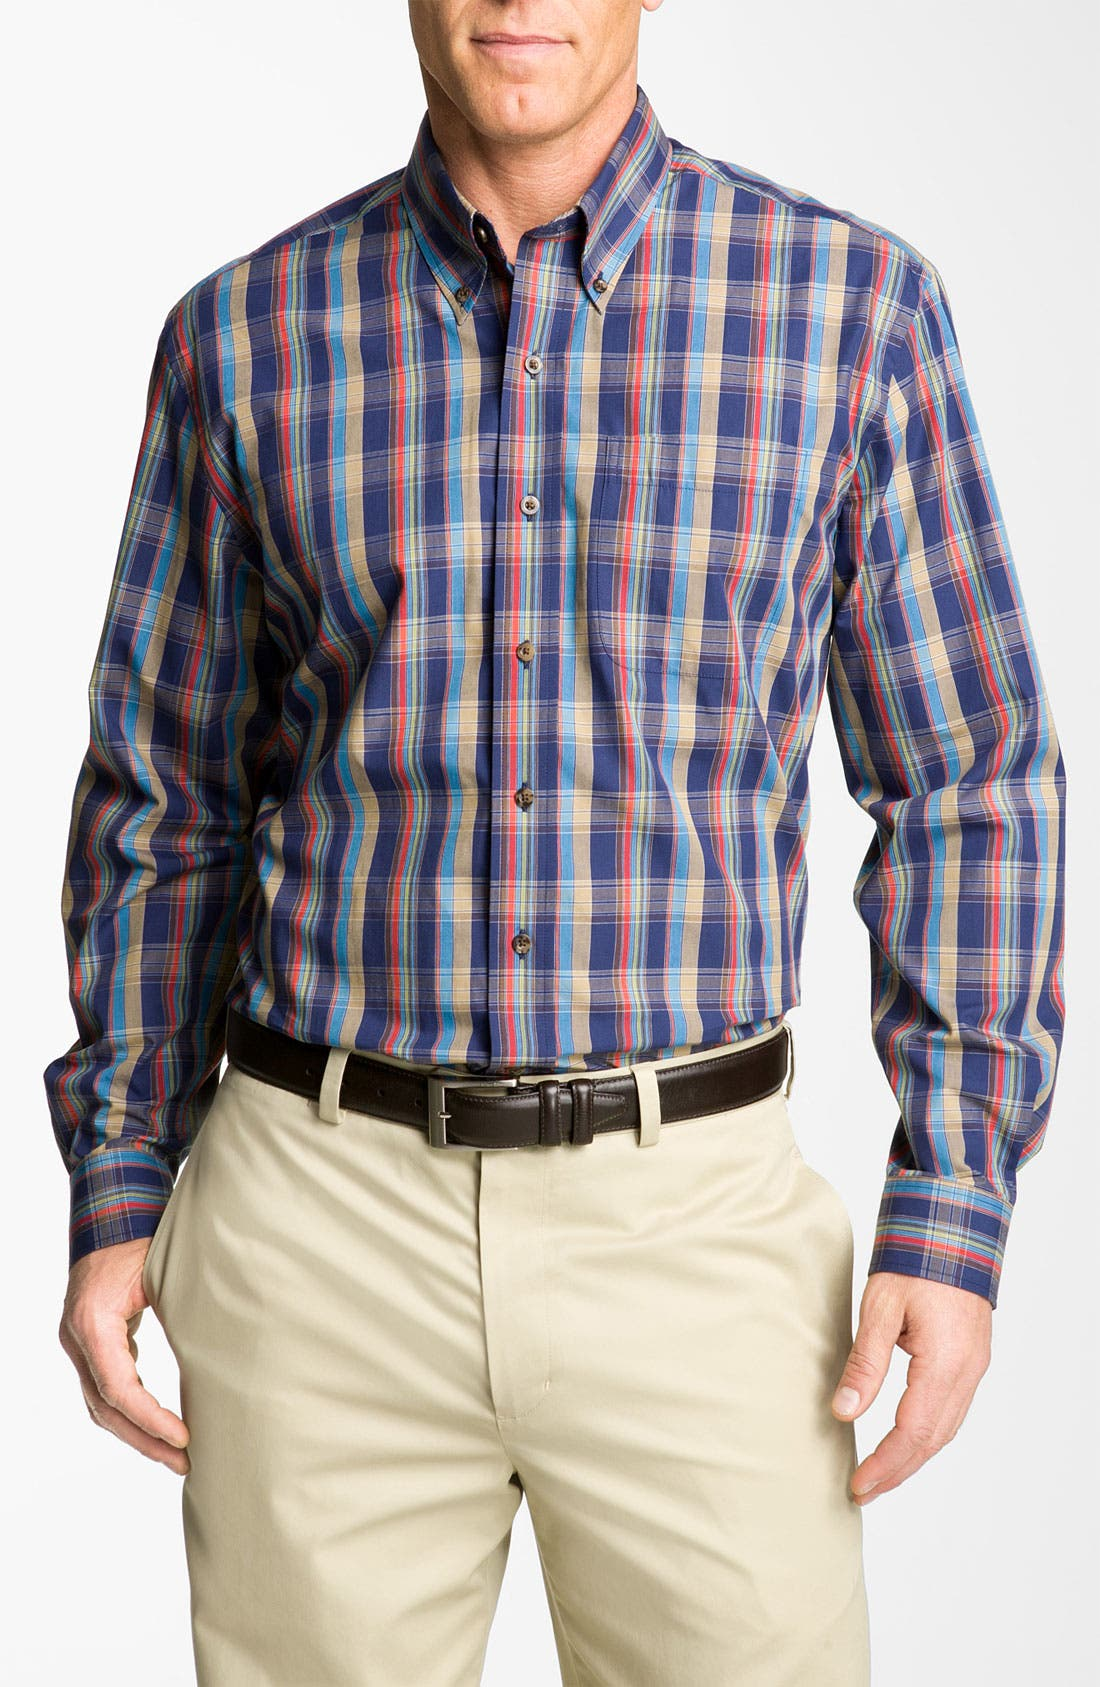 Alternate Image 1 Selected - Cutter & Buck 'Palouse' Plaid Sport Shirt (Big & Tall)